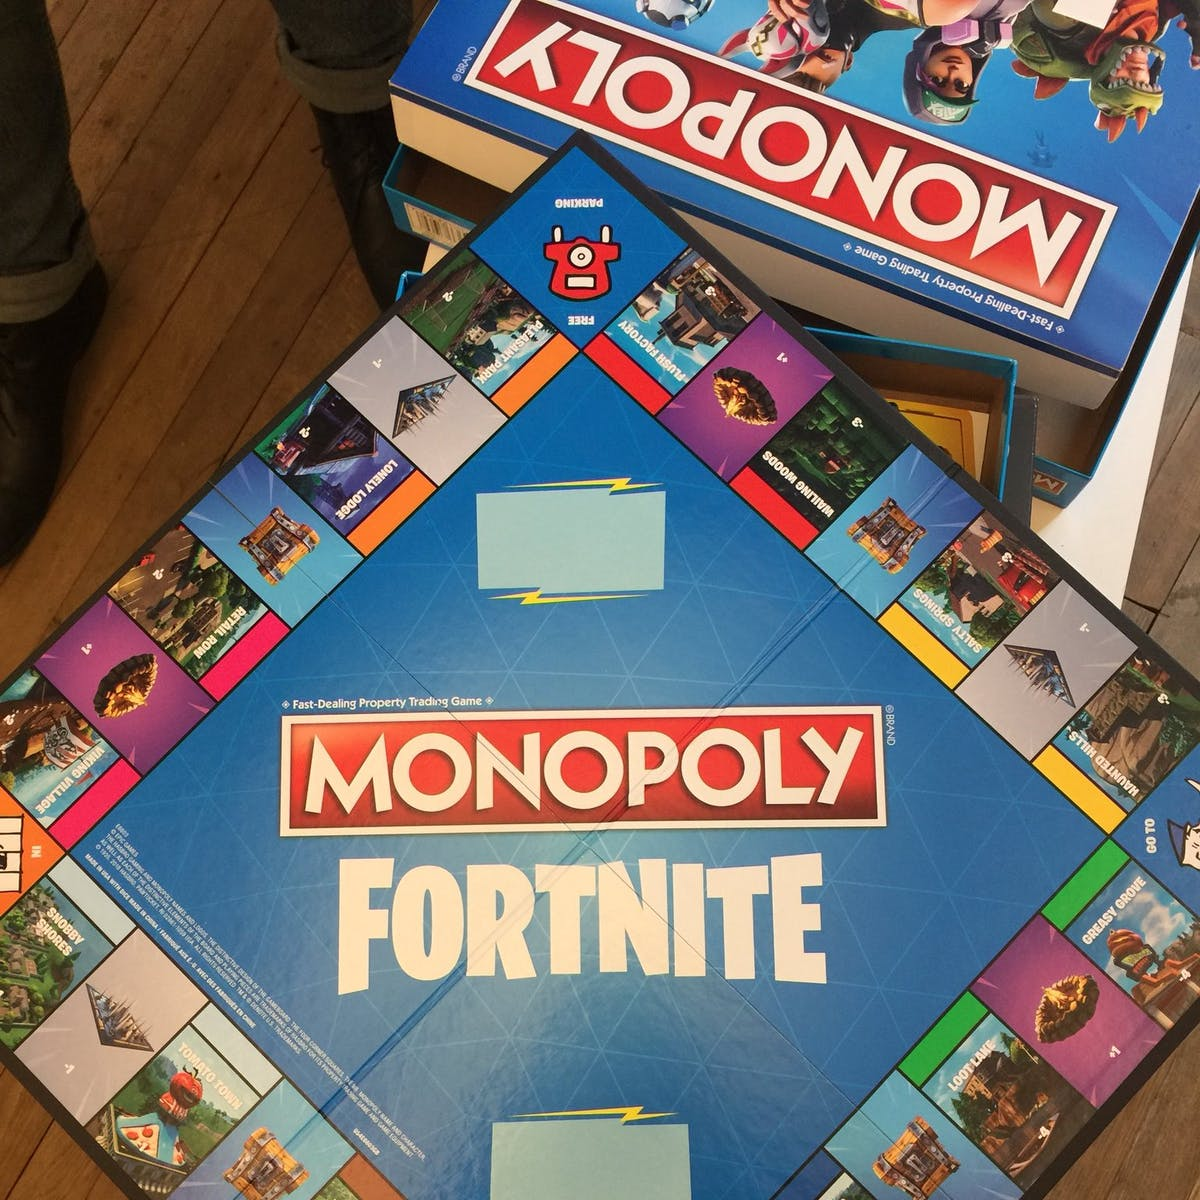 fortnite monopoly review nothing like either game but still a lot of fun inverse - fortnite monopoly gameplay